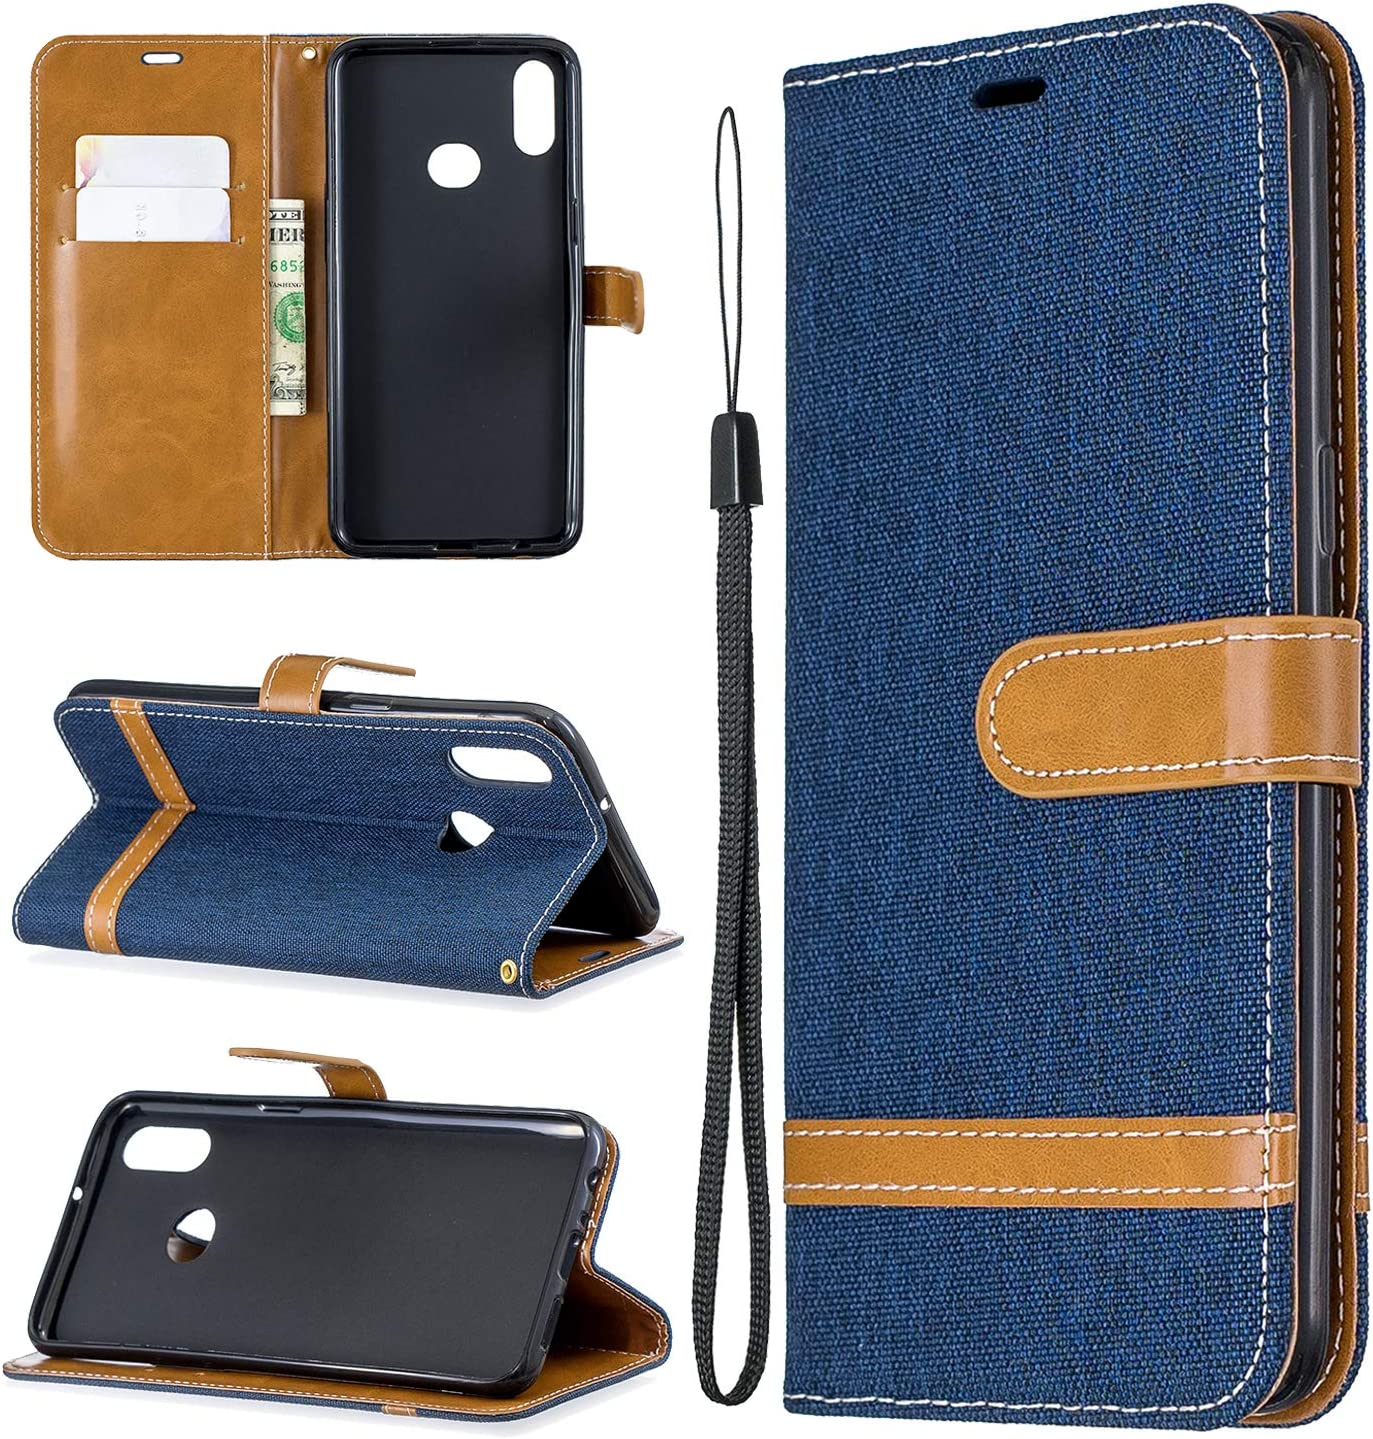 NEXCURIO Wallet Case for Galaxy A10S with Card Holder Side Pocket Kickstand NEBFE020298 Sapphire Shockproof Leather Flip Cover Case for Samsung Galaxy A10S